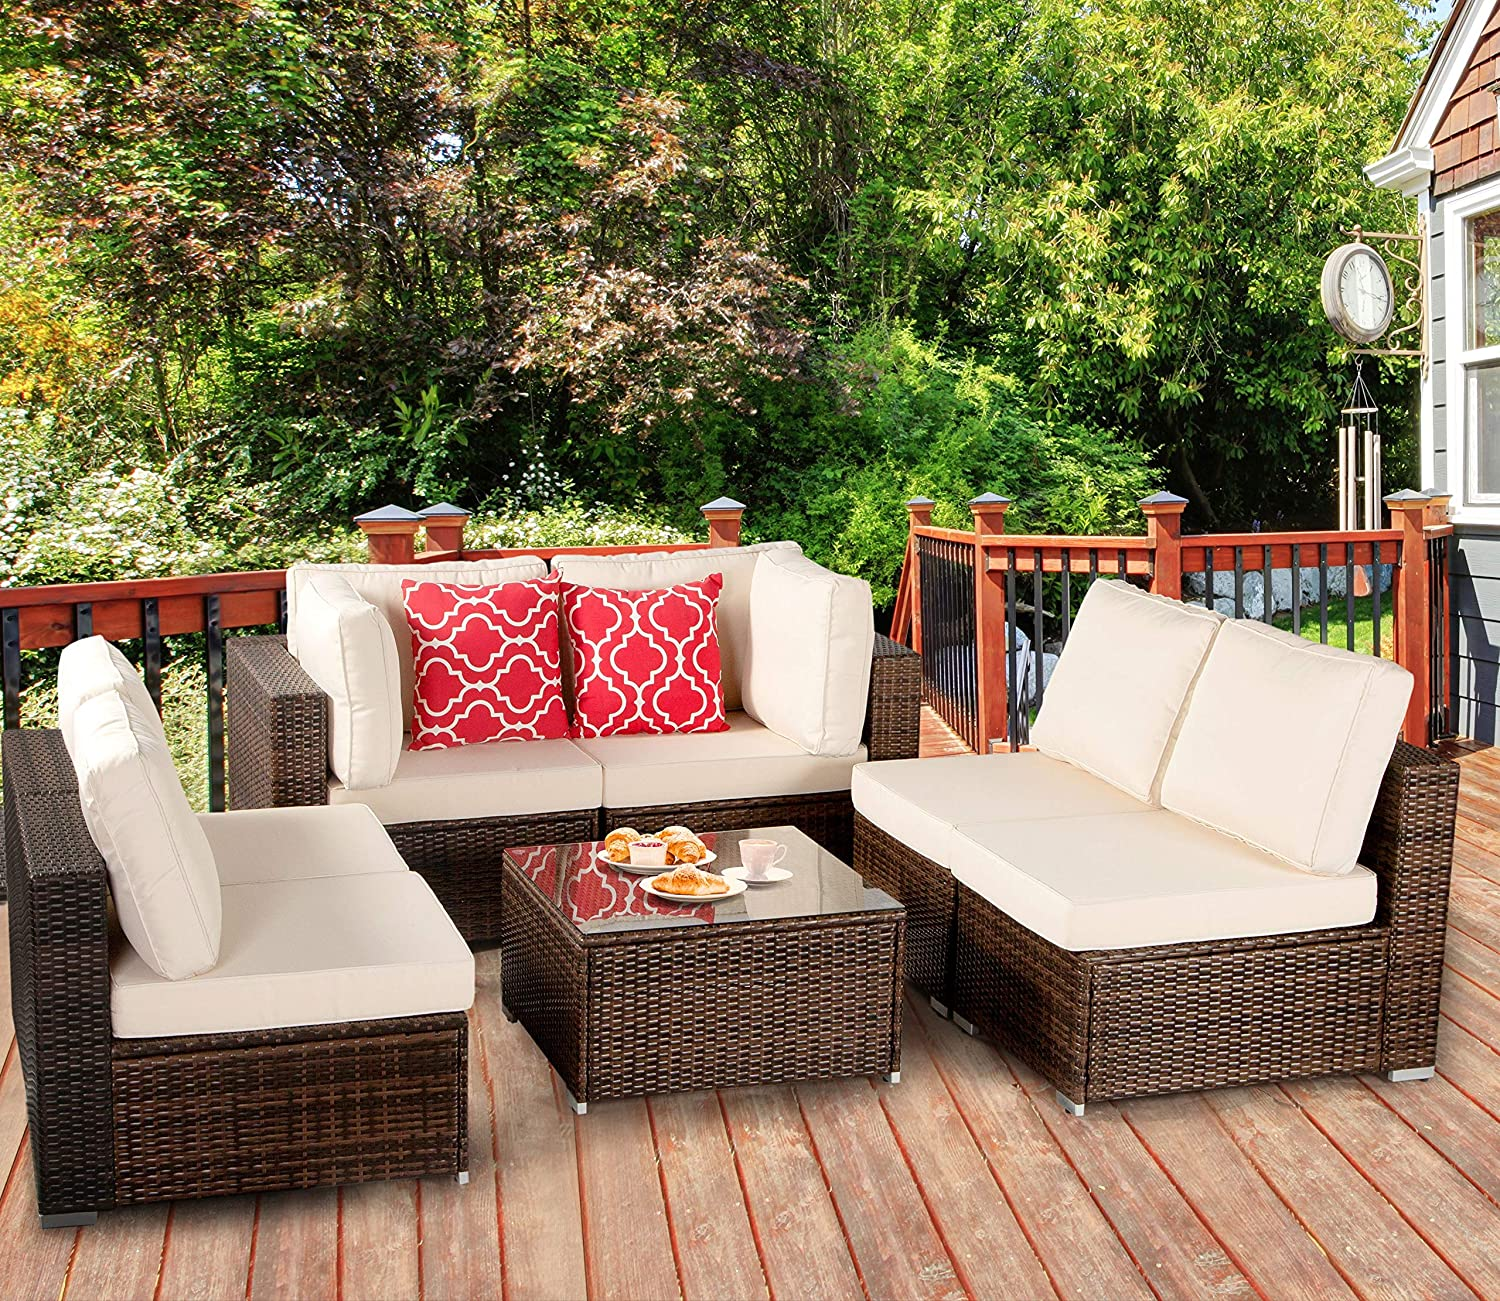 Polaris Garden 11-Piece Outdoor Patio Furniture Set, PE Rattan Wicker Sofa  Set, Outdoor Sectional Conversation Furniture Chair Set with Cushions and